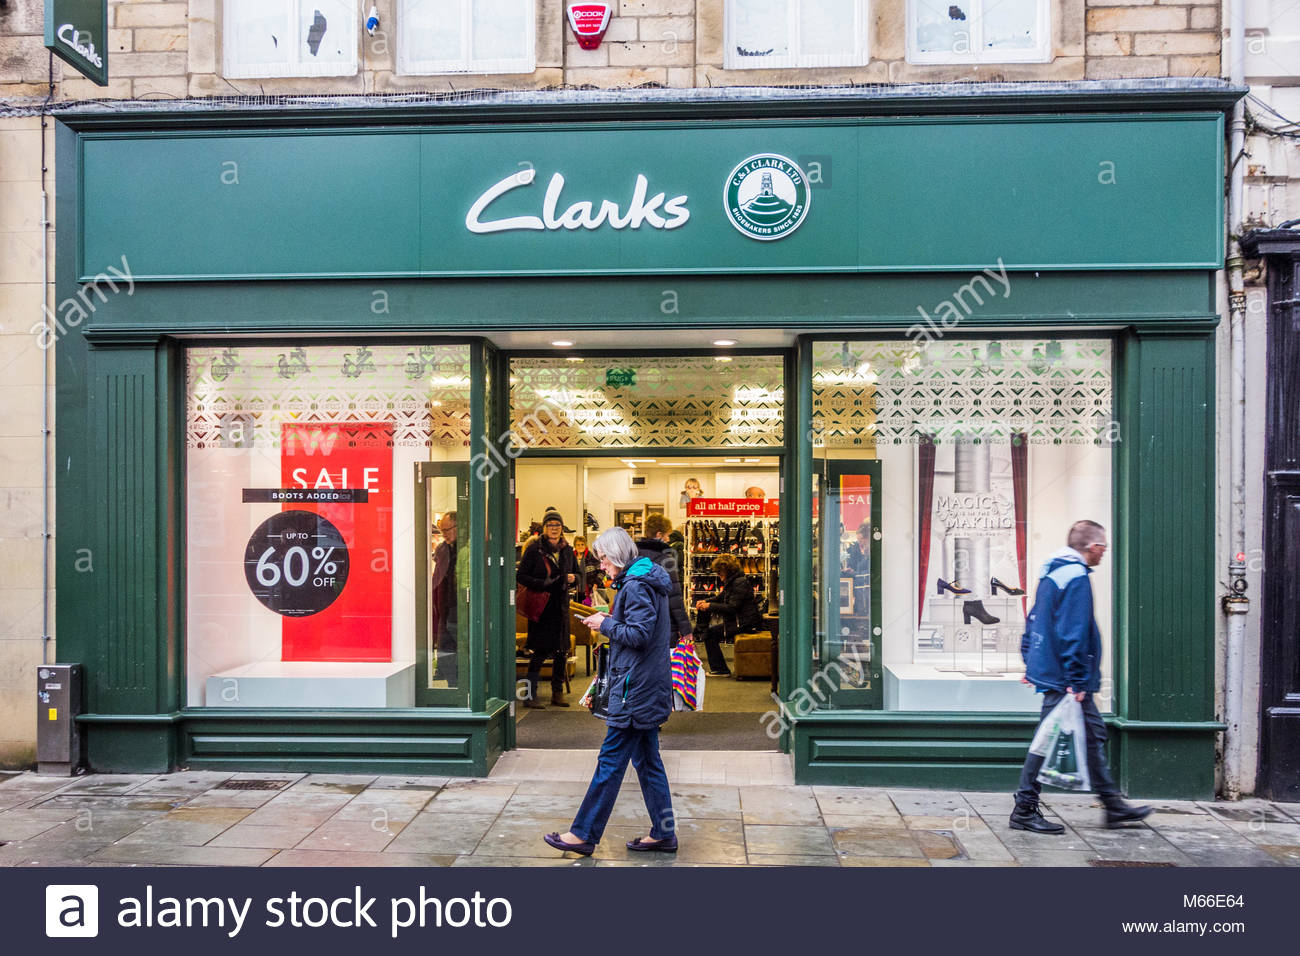 A branch of the Clarks shoe shop in Penny Street, Lancaster, UK Stock Photo